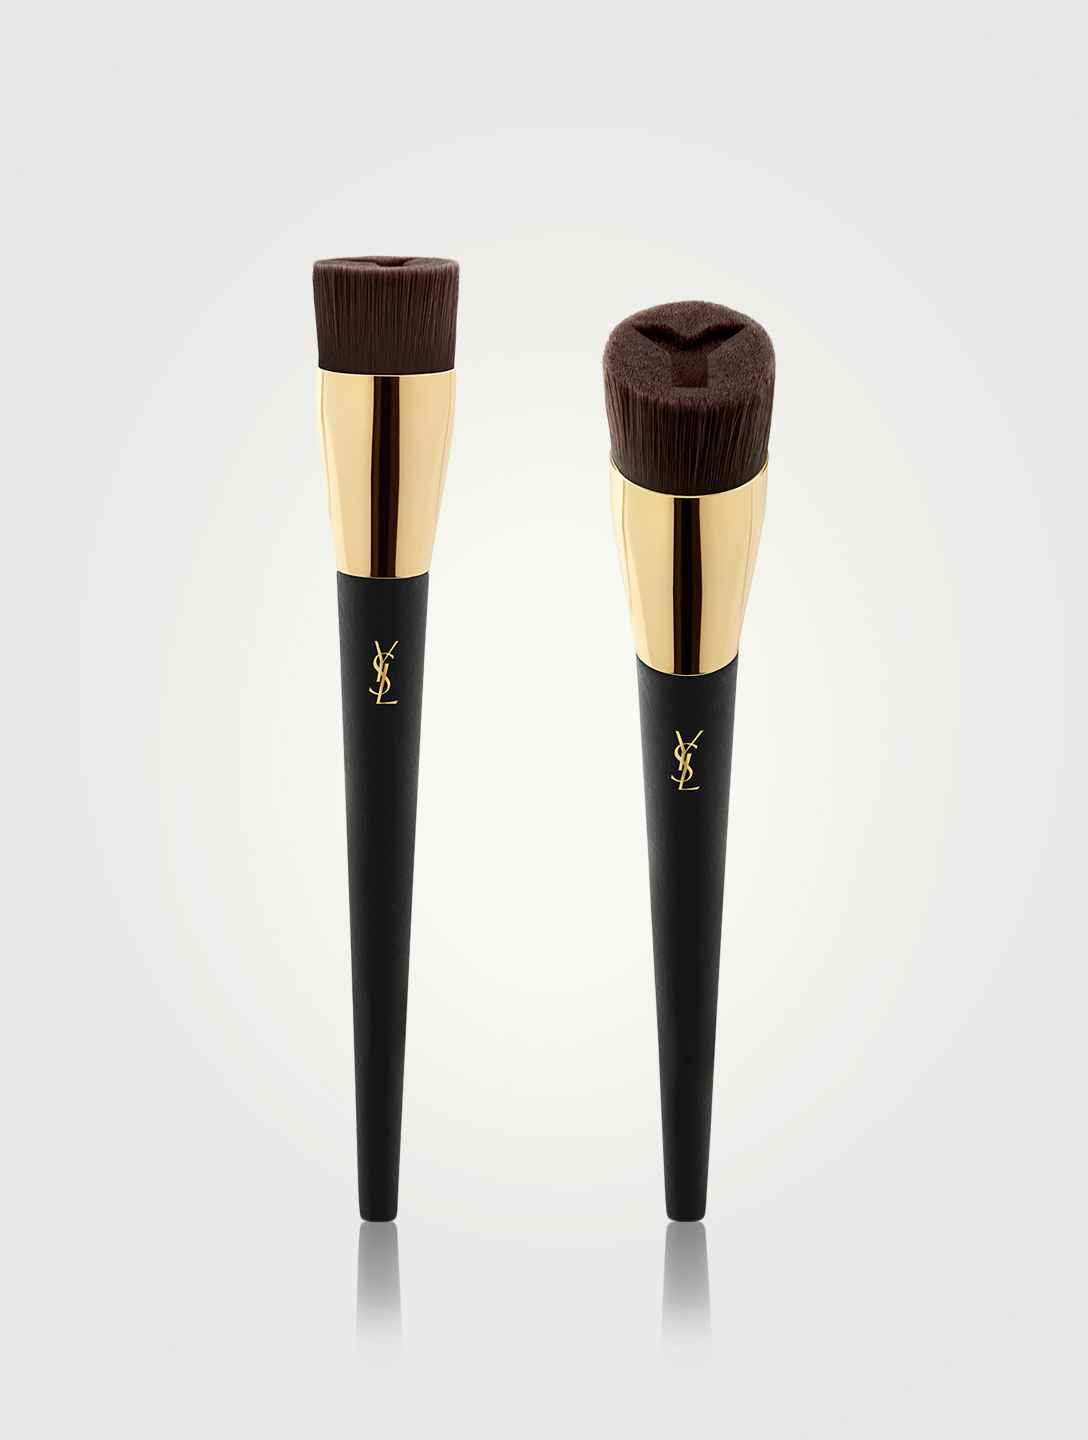 YVES SAINT LAURENT Y Brush - High Coverage Foundation Brush with Reservoir No3 Beauty